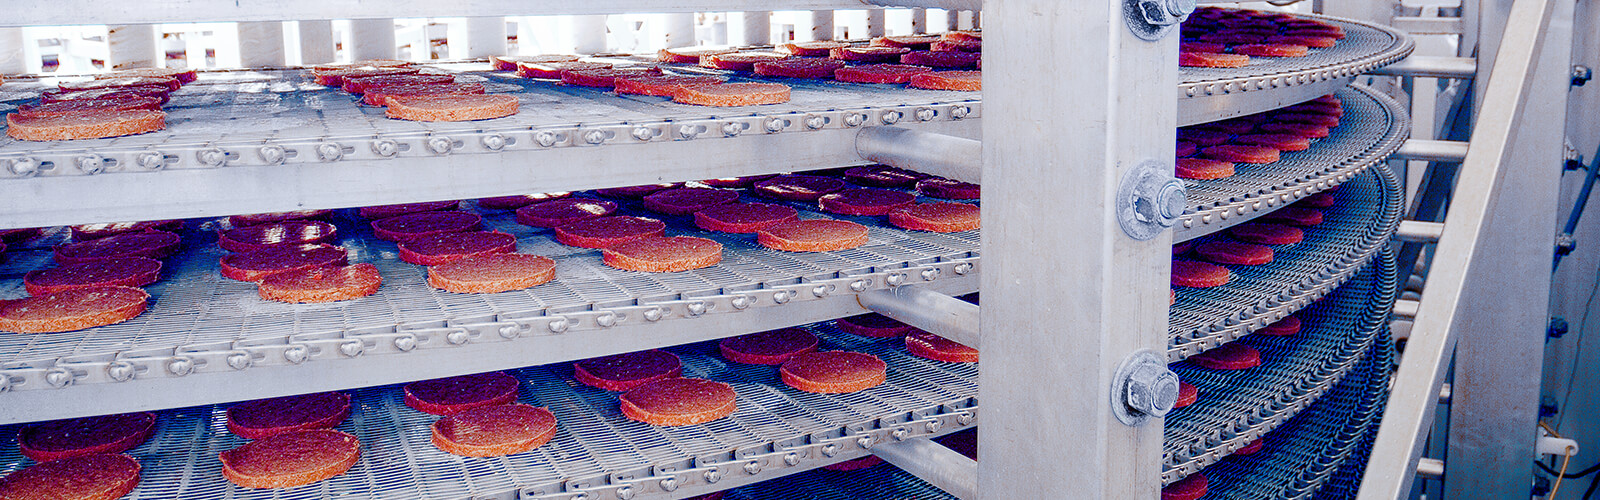 Buy organic beef - Where To Buy Usda Organic Beef For Your Retail Needs